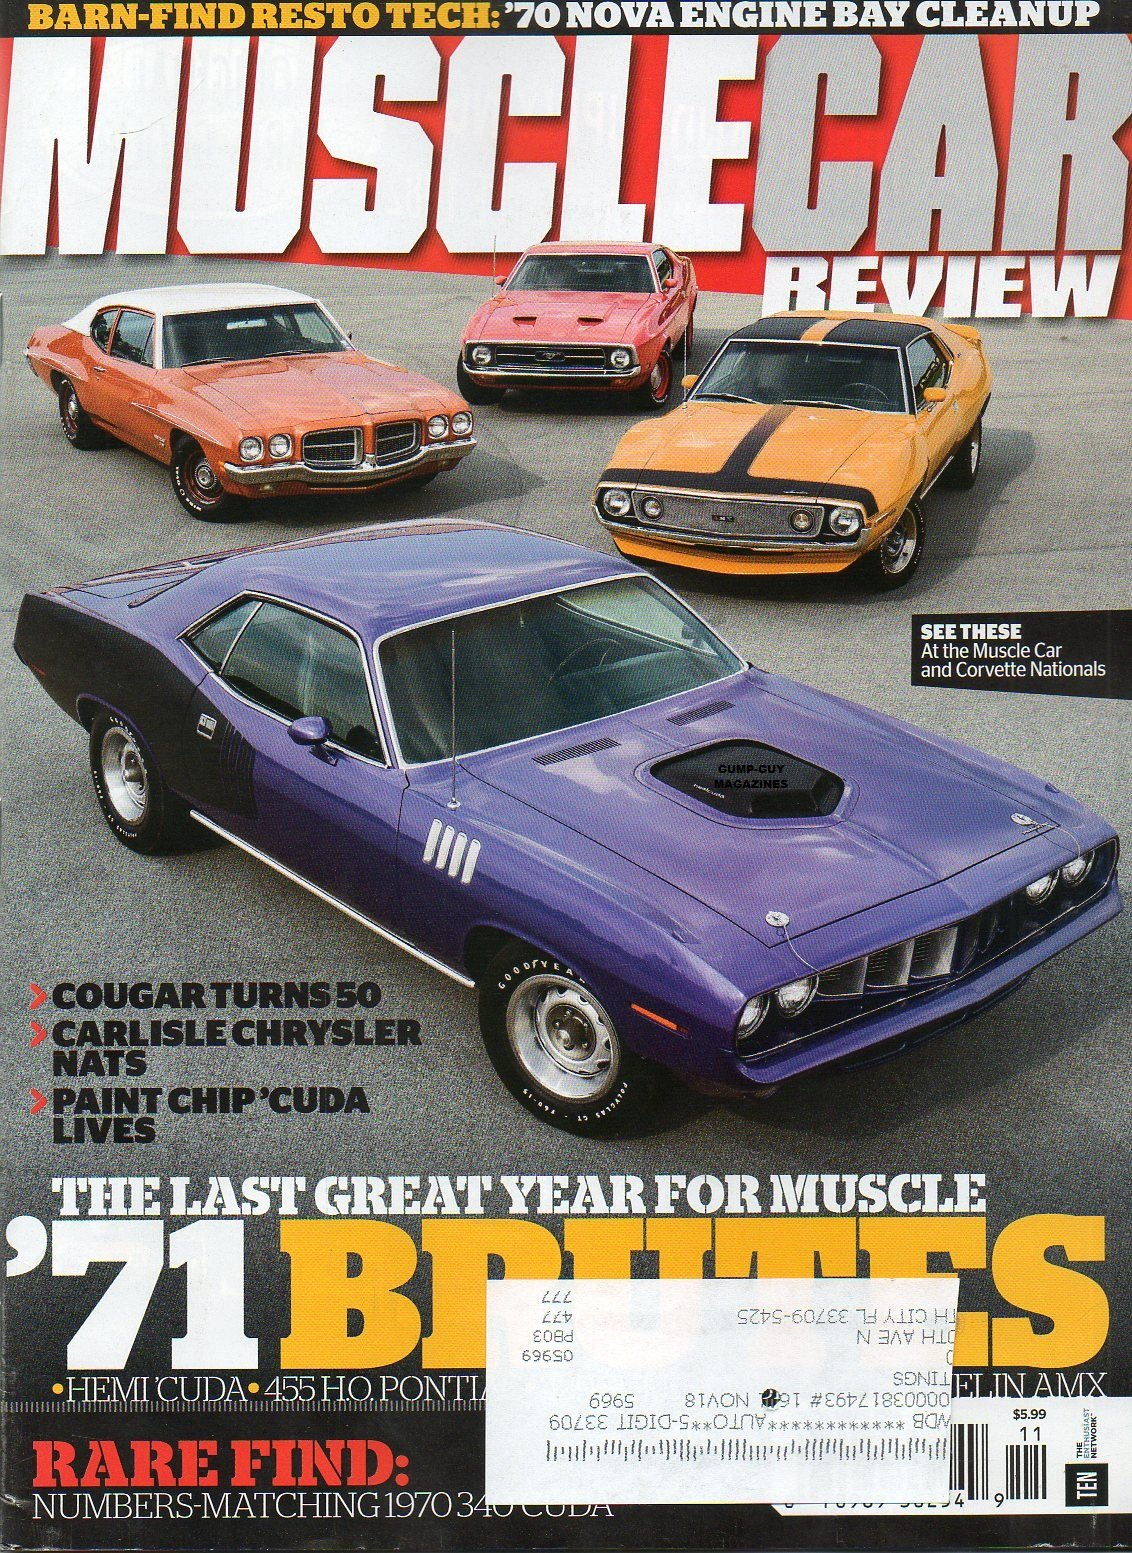 Muscle Car Review 2016 Magazine RARE BARN-FIND RESTO TECH 1970 NOVA ENGINE BAY CLEANUP Cougar Turns 50 ebook